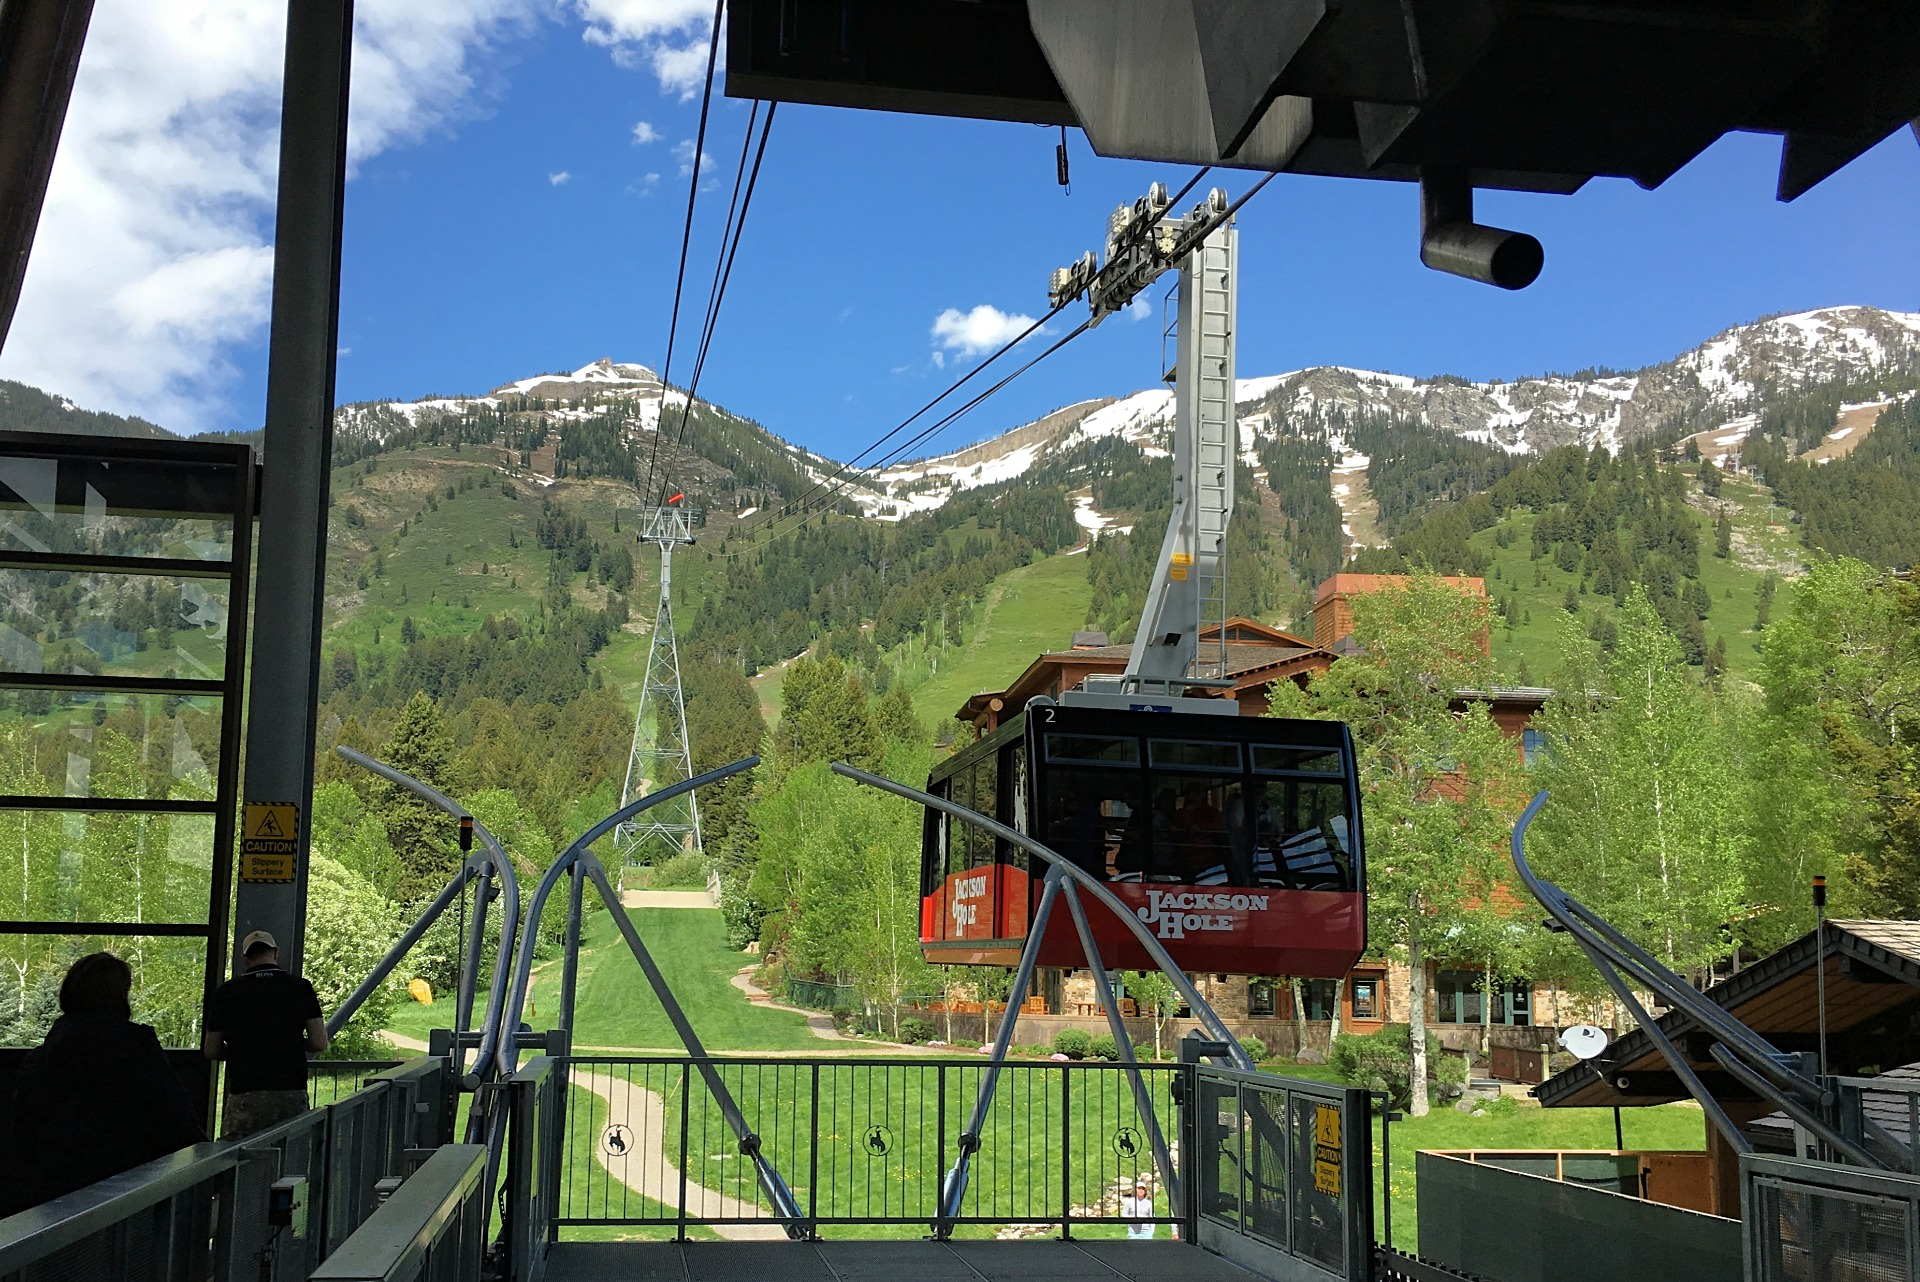 Jackson Hole Wyoming summer isn't complete without a ride up the Jackson Hole Resort tram